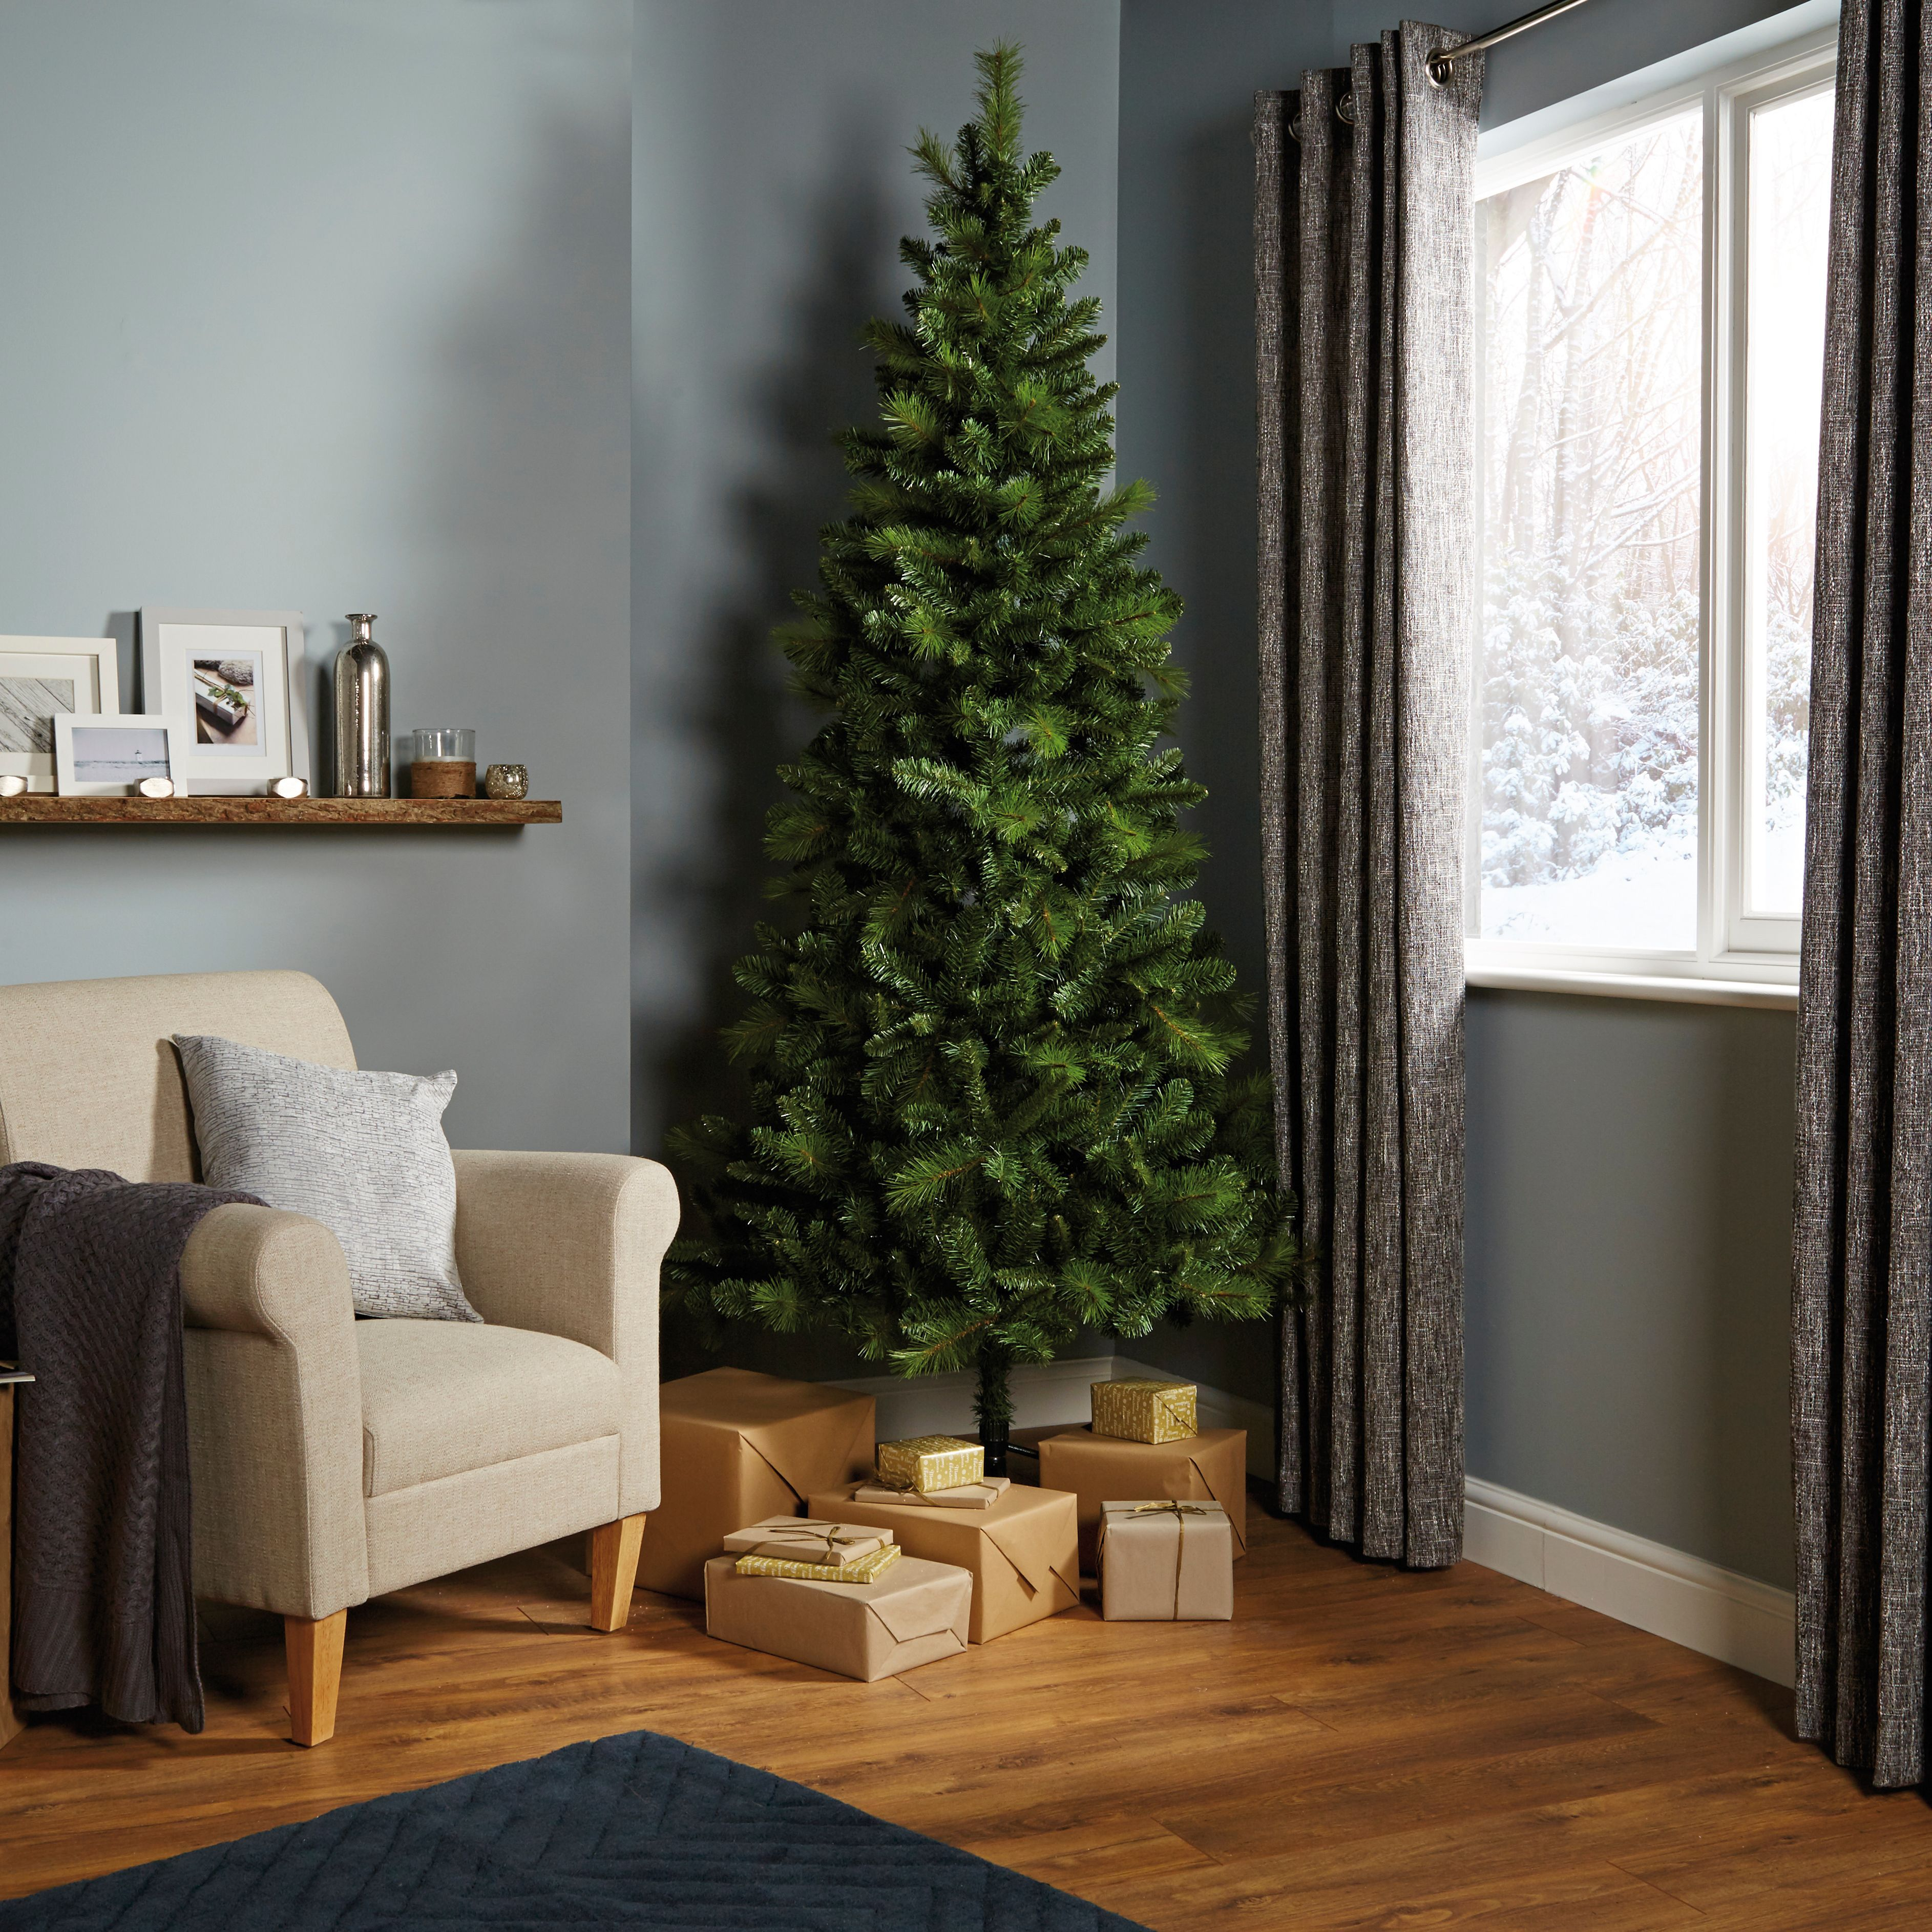 7ft 6in Eiger Classic Christmas Tree Departments Diy At B Q 40 Classic Christmas Tree Pine Christmas Tree Christmas Tree